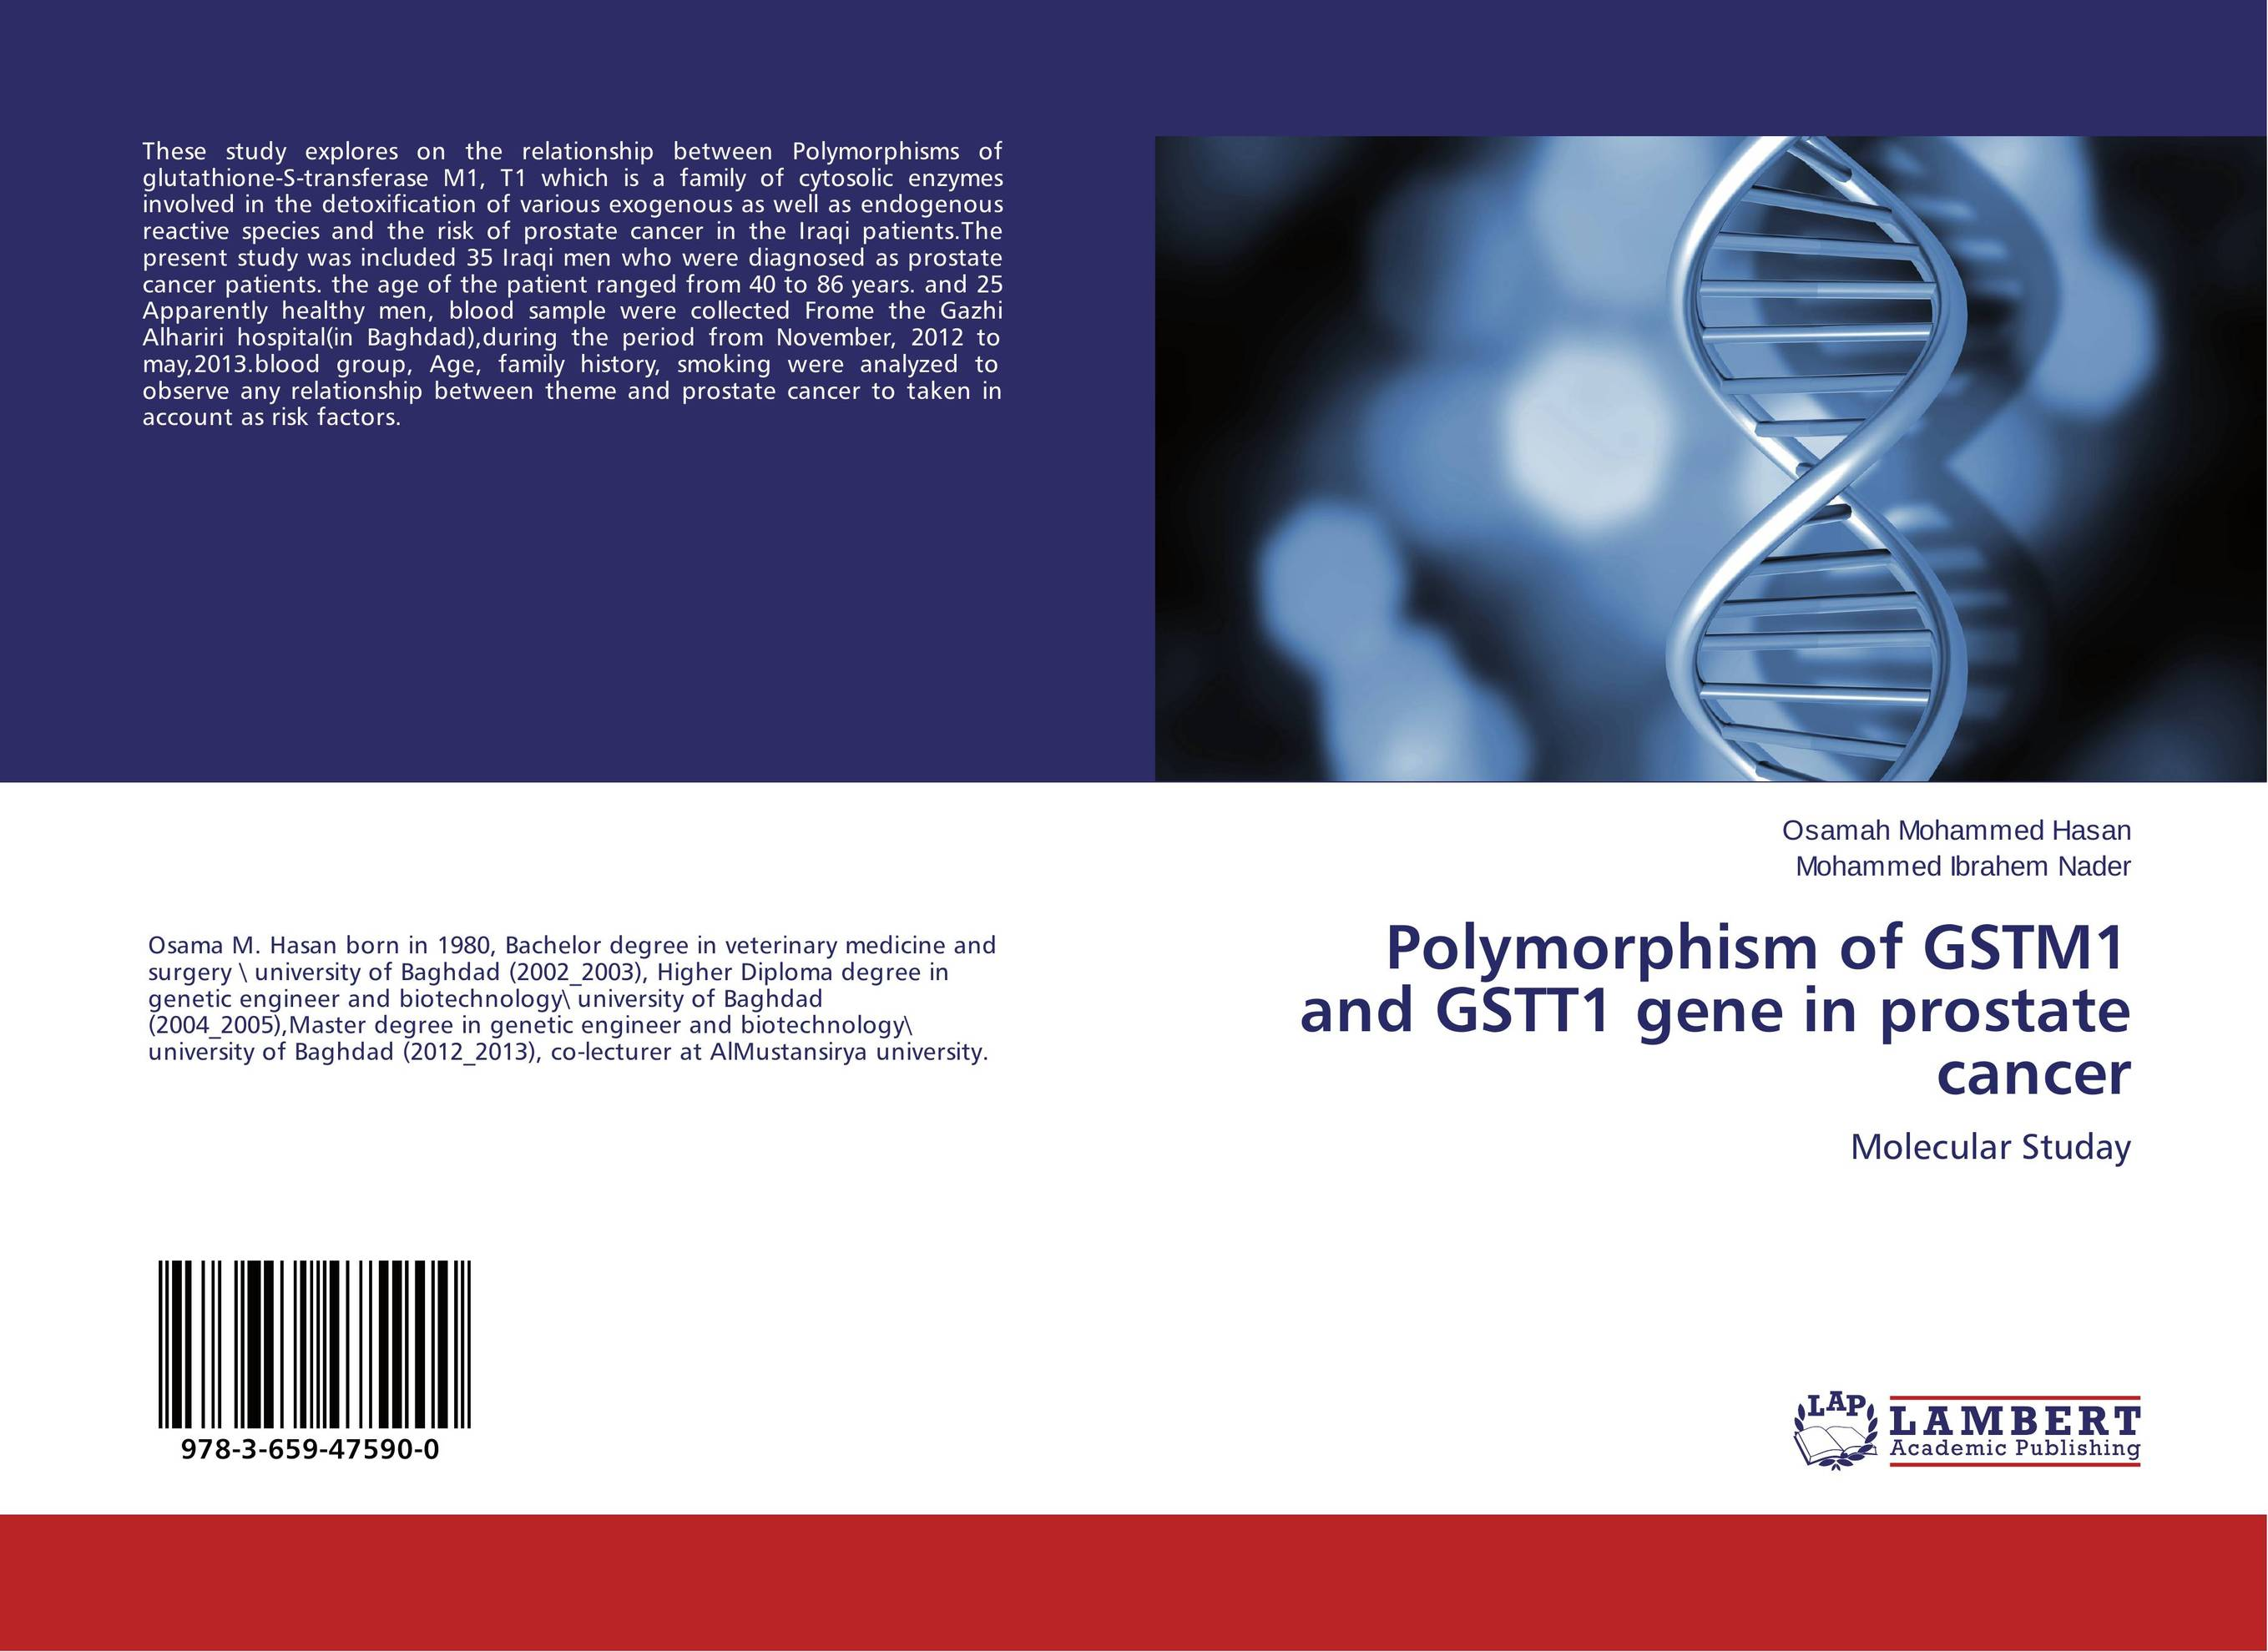 Polymorphism of GSTM1 and GSTT1 gene in prostate cancer benign enlargement of prostate gland bep in ayurveda